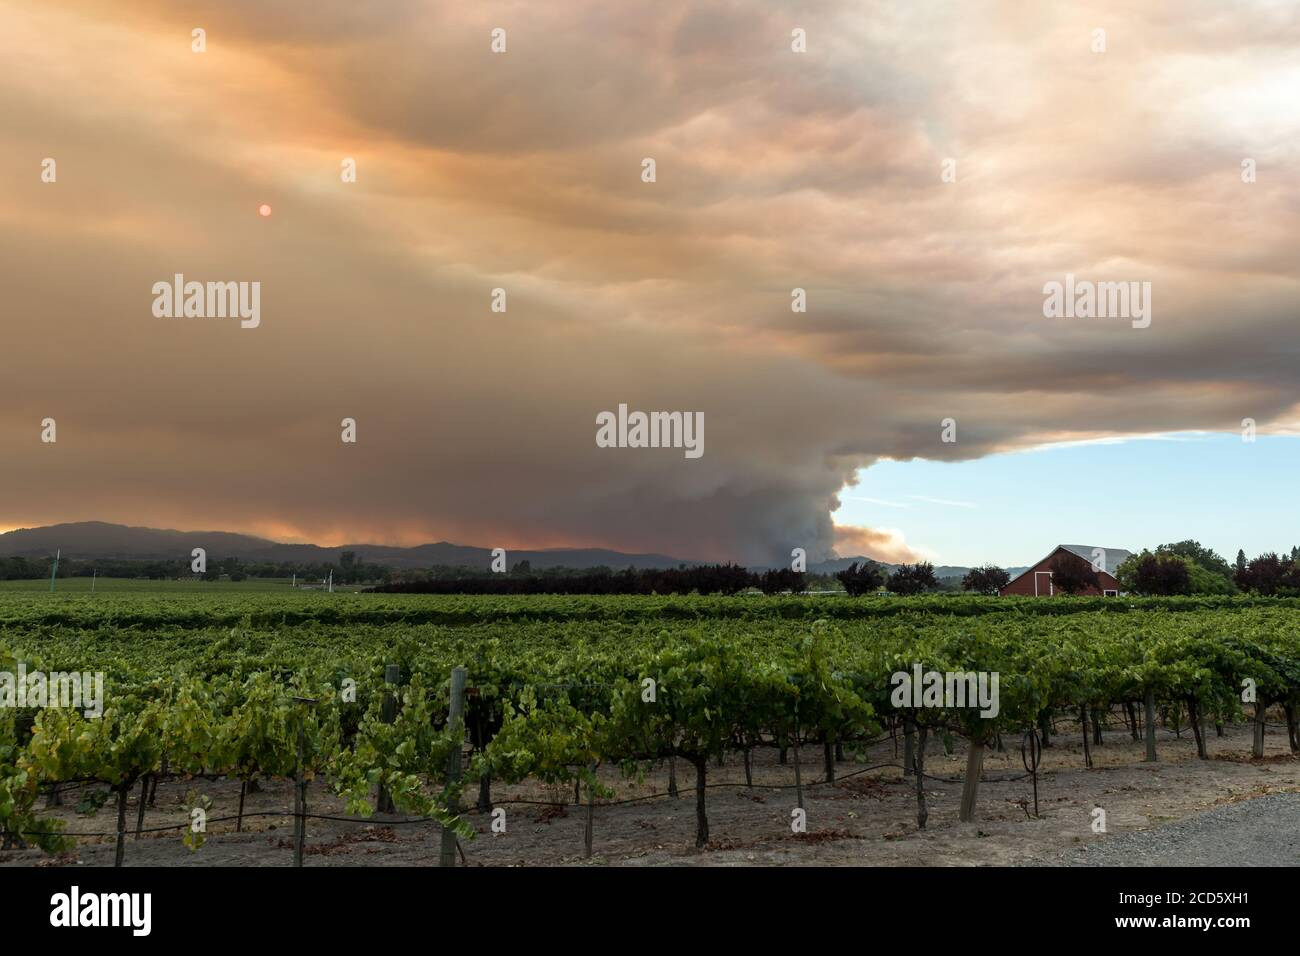 Wine Country Conflagration - Wide view of smoke emanating from the Walbridge Fire behind one of many vineyards in the area. Santa Rosa, CA, USA Stock Photo